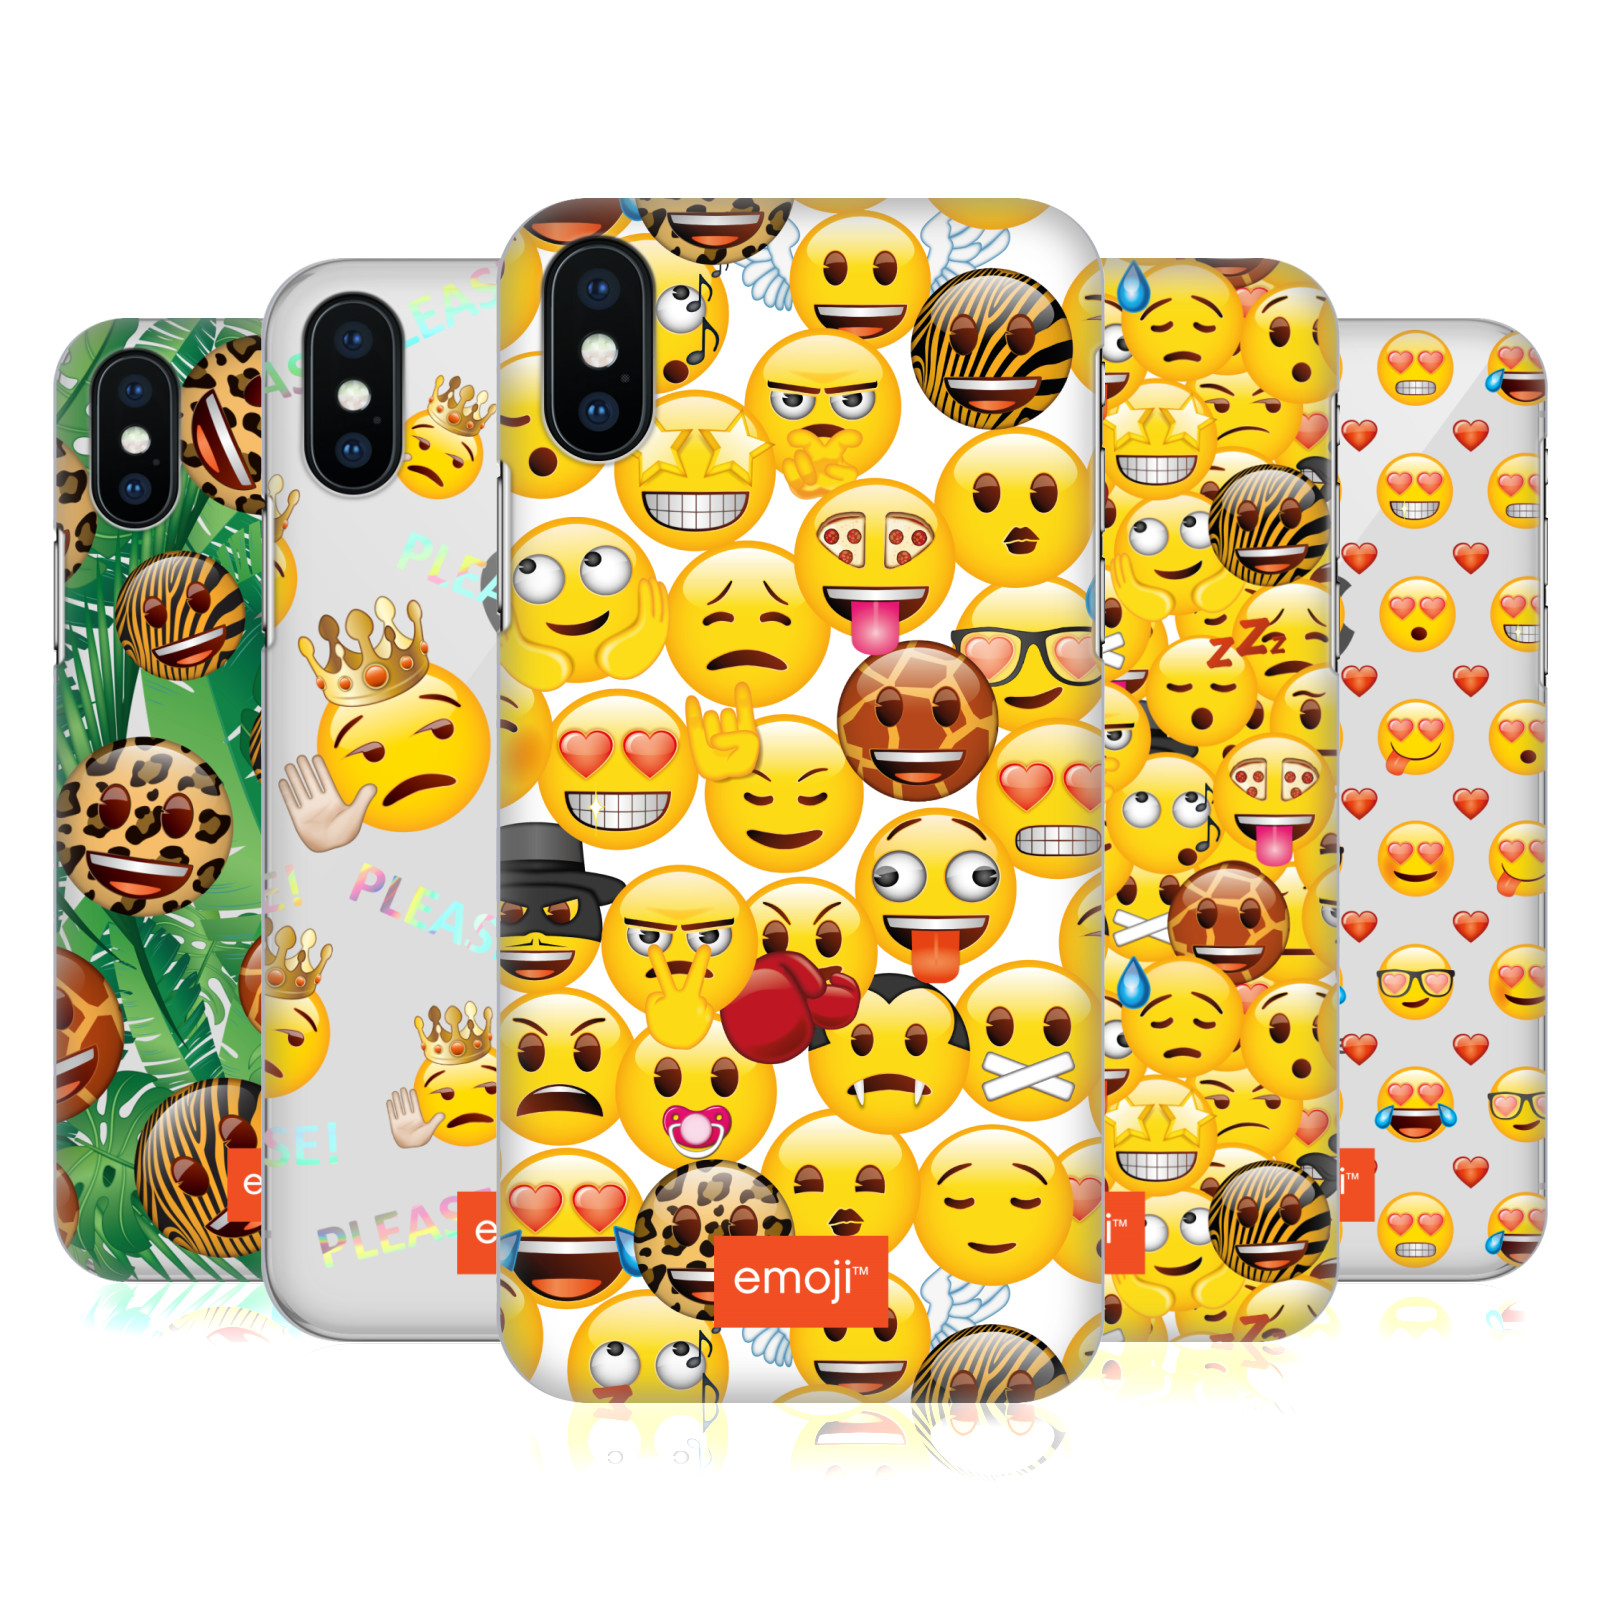 Official emoji® New Expressions